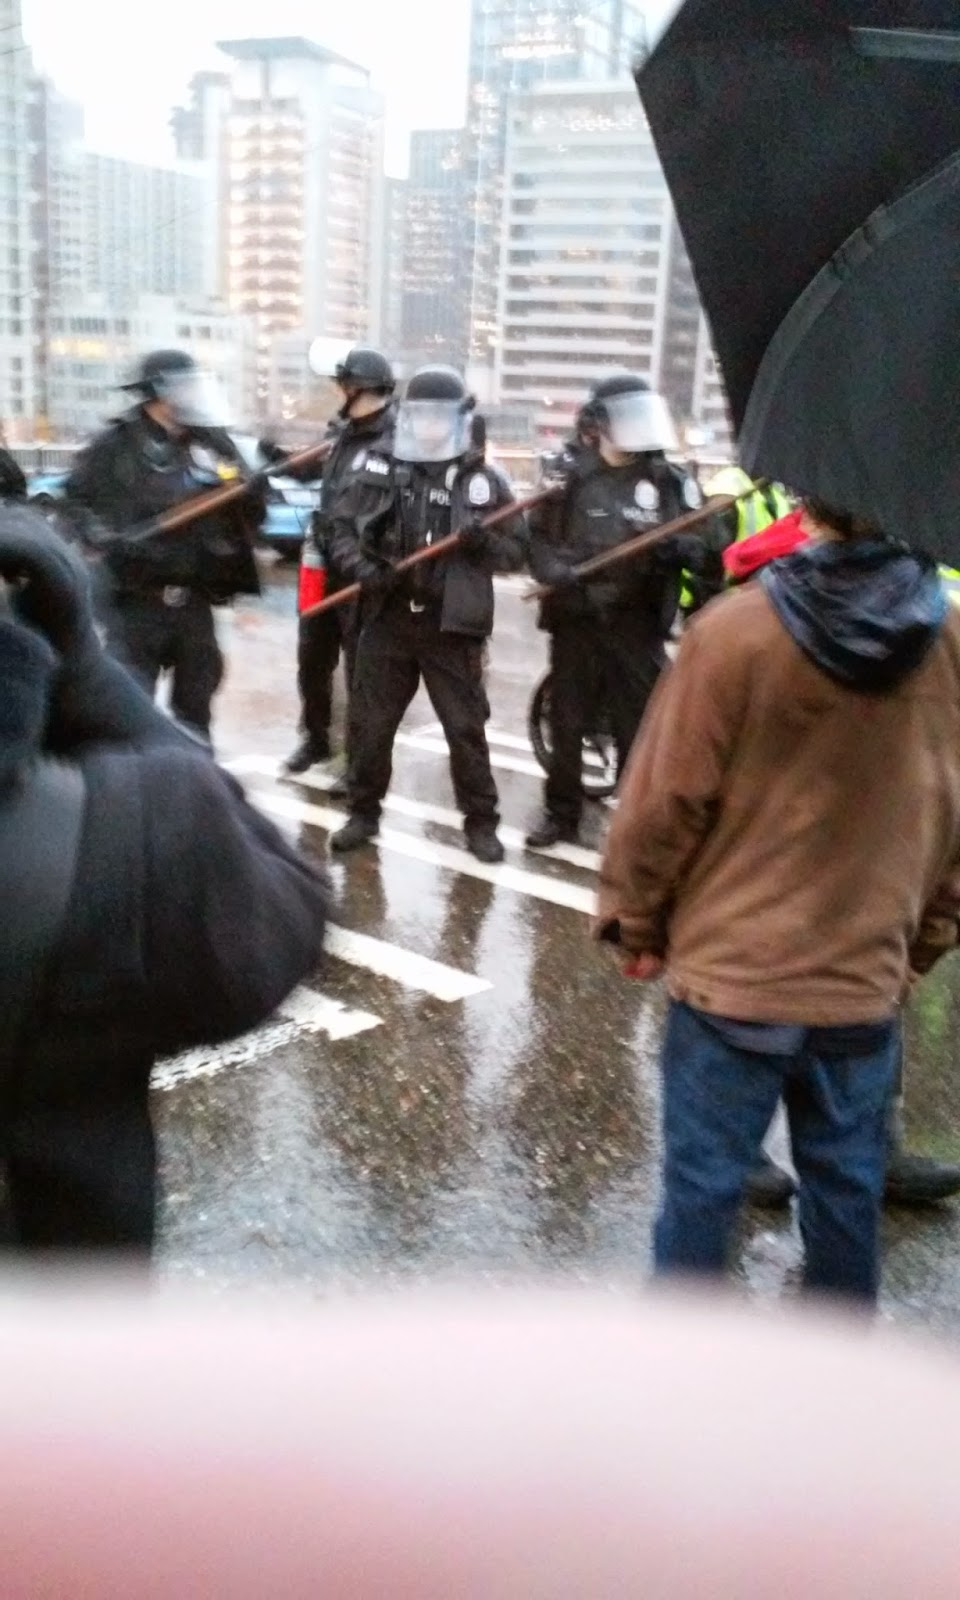 Photo of police line, with cops in riot gear holding clubs in front of them